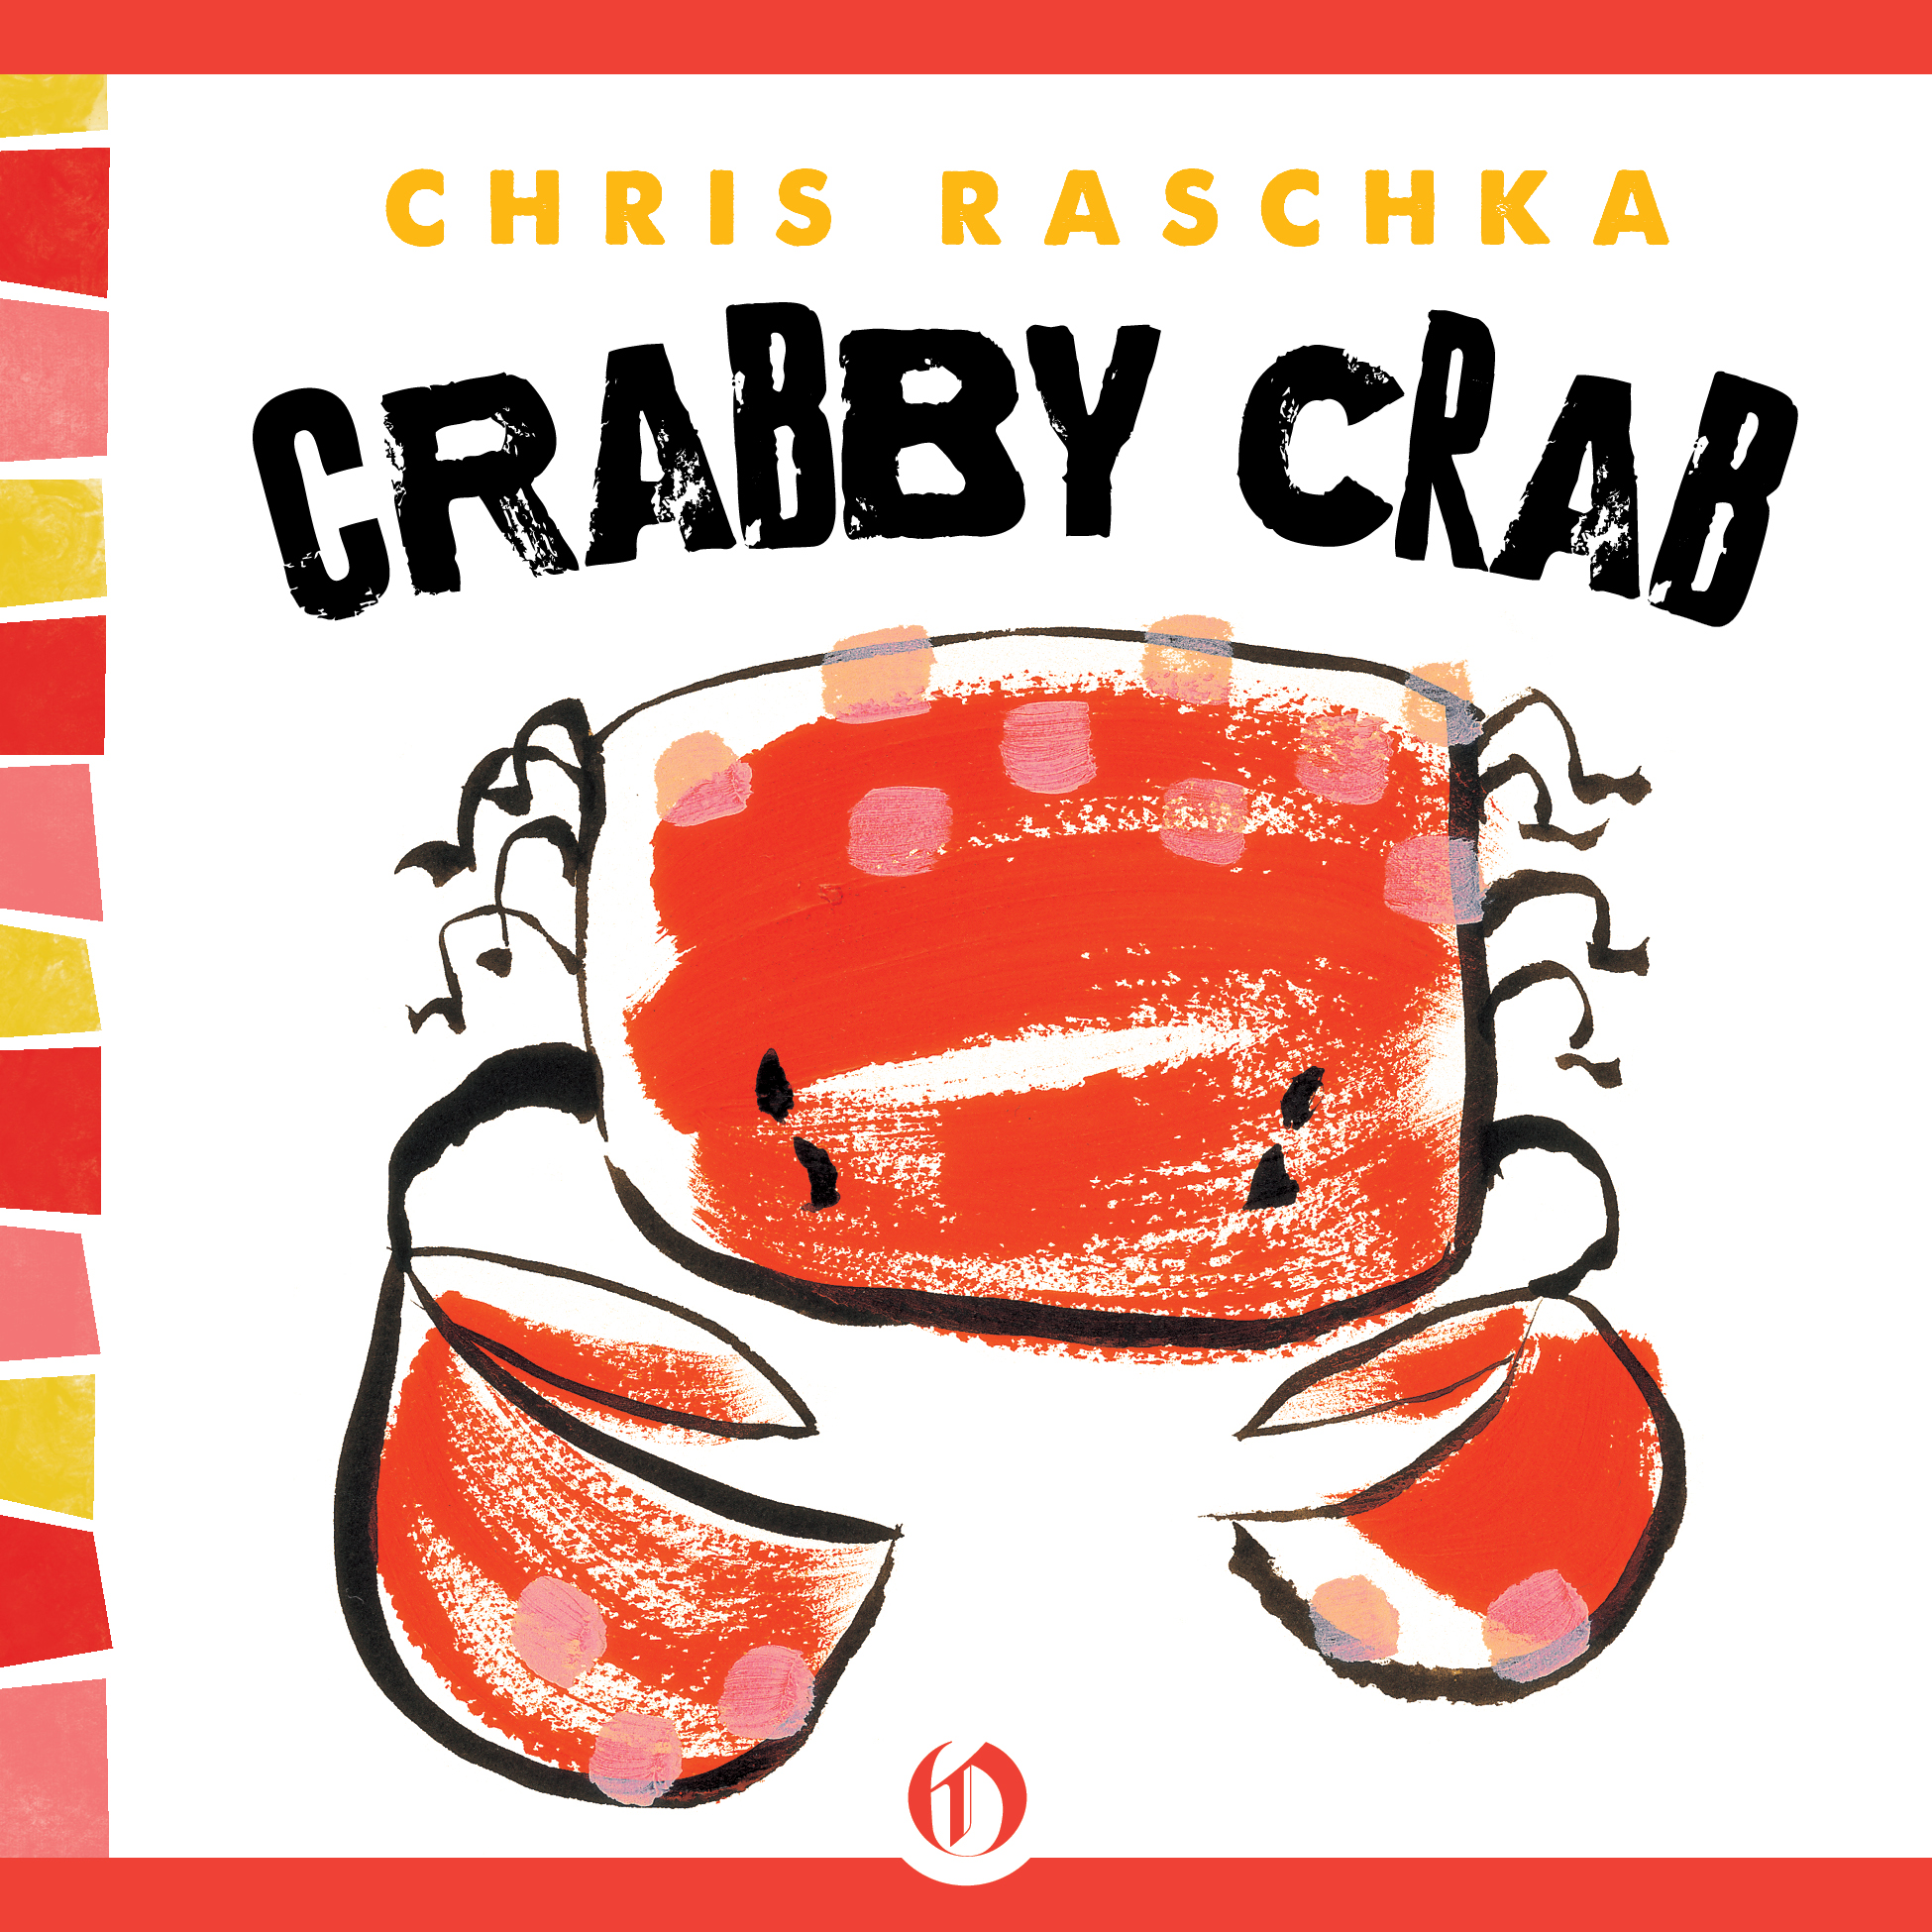 Cover Image of Crabby Crab